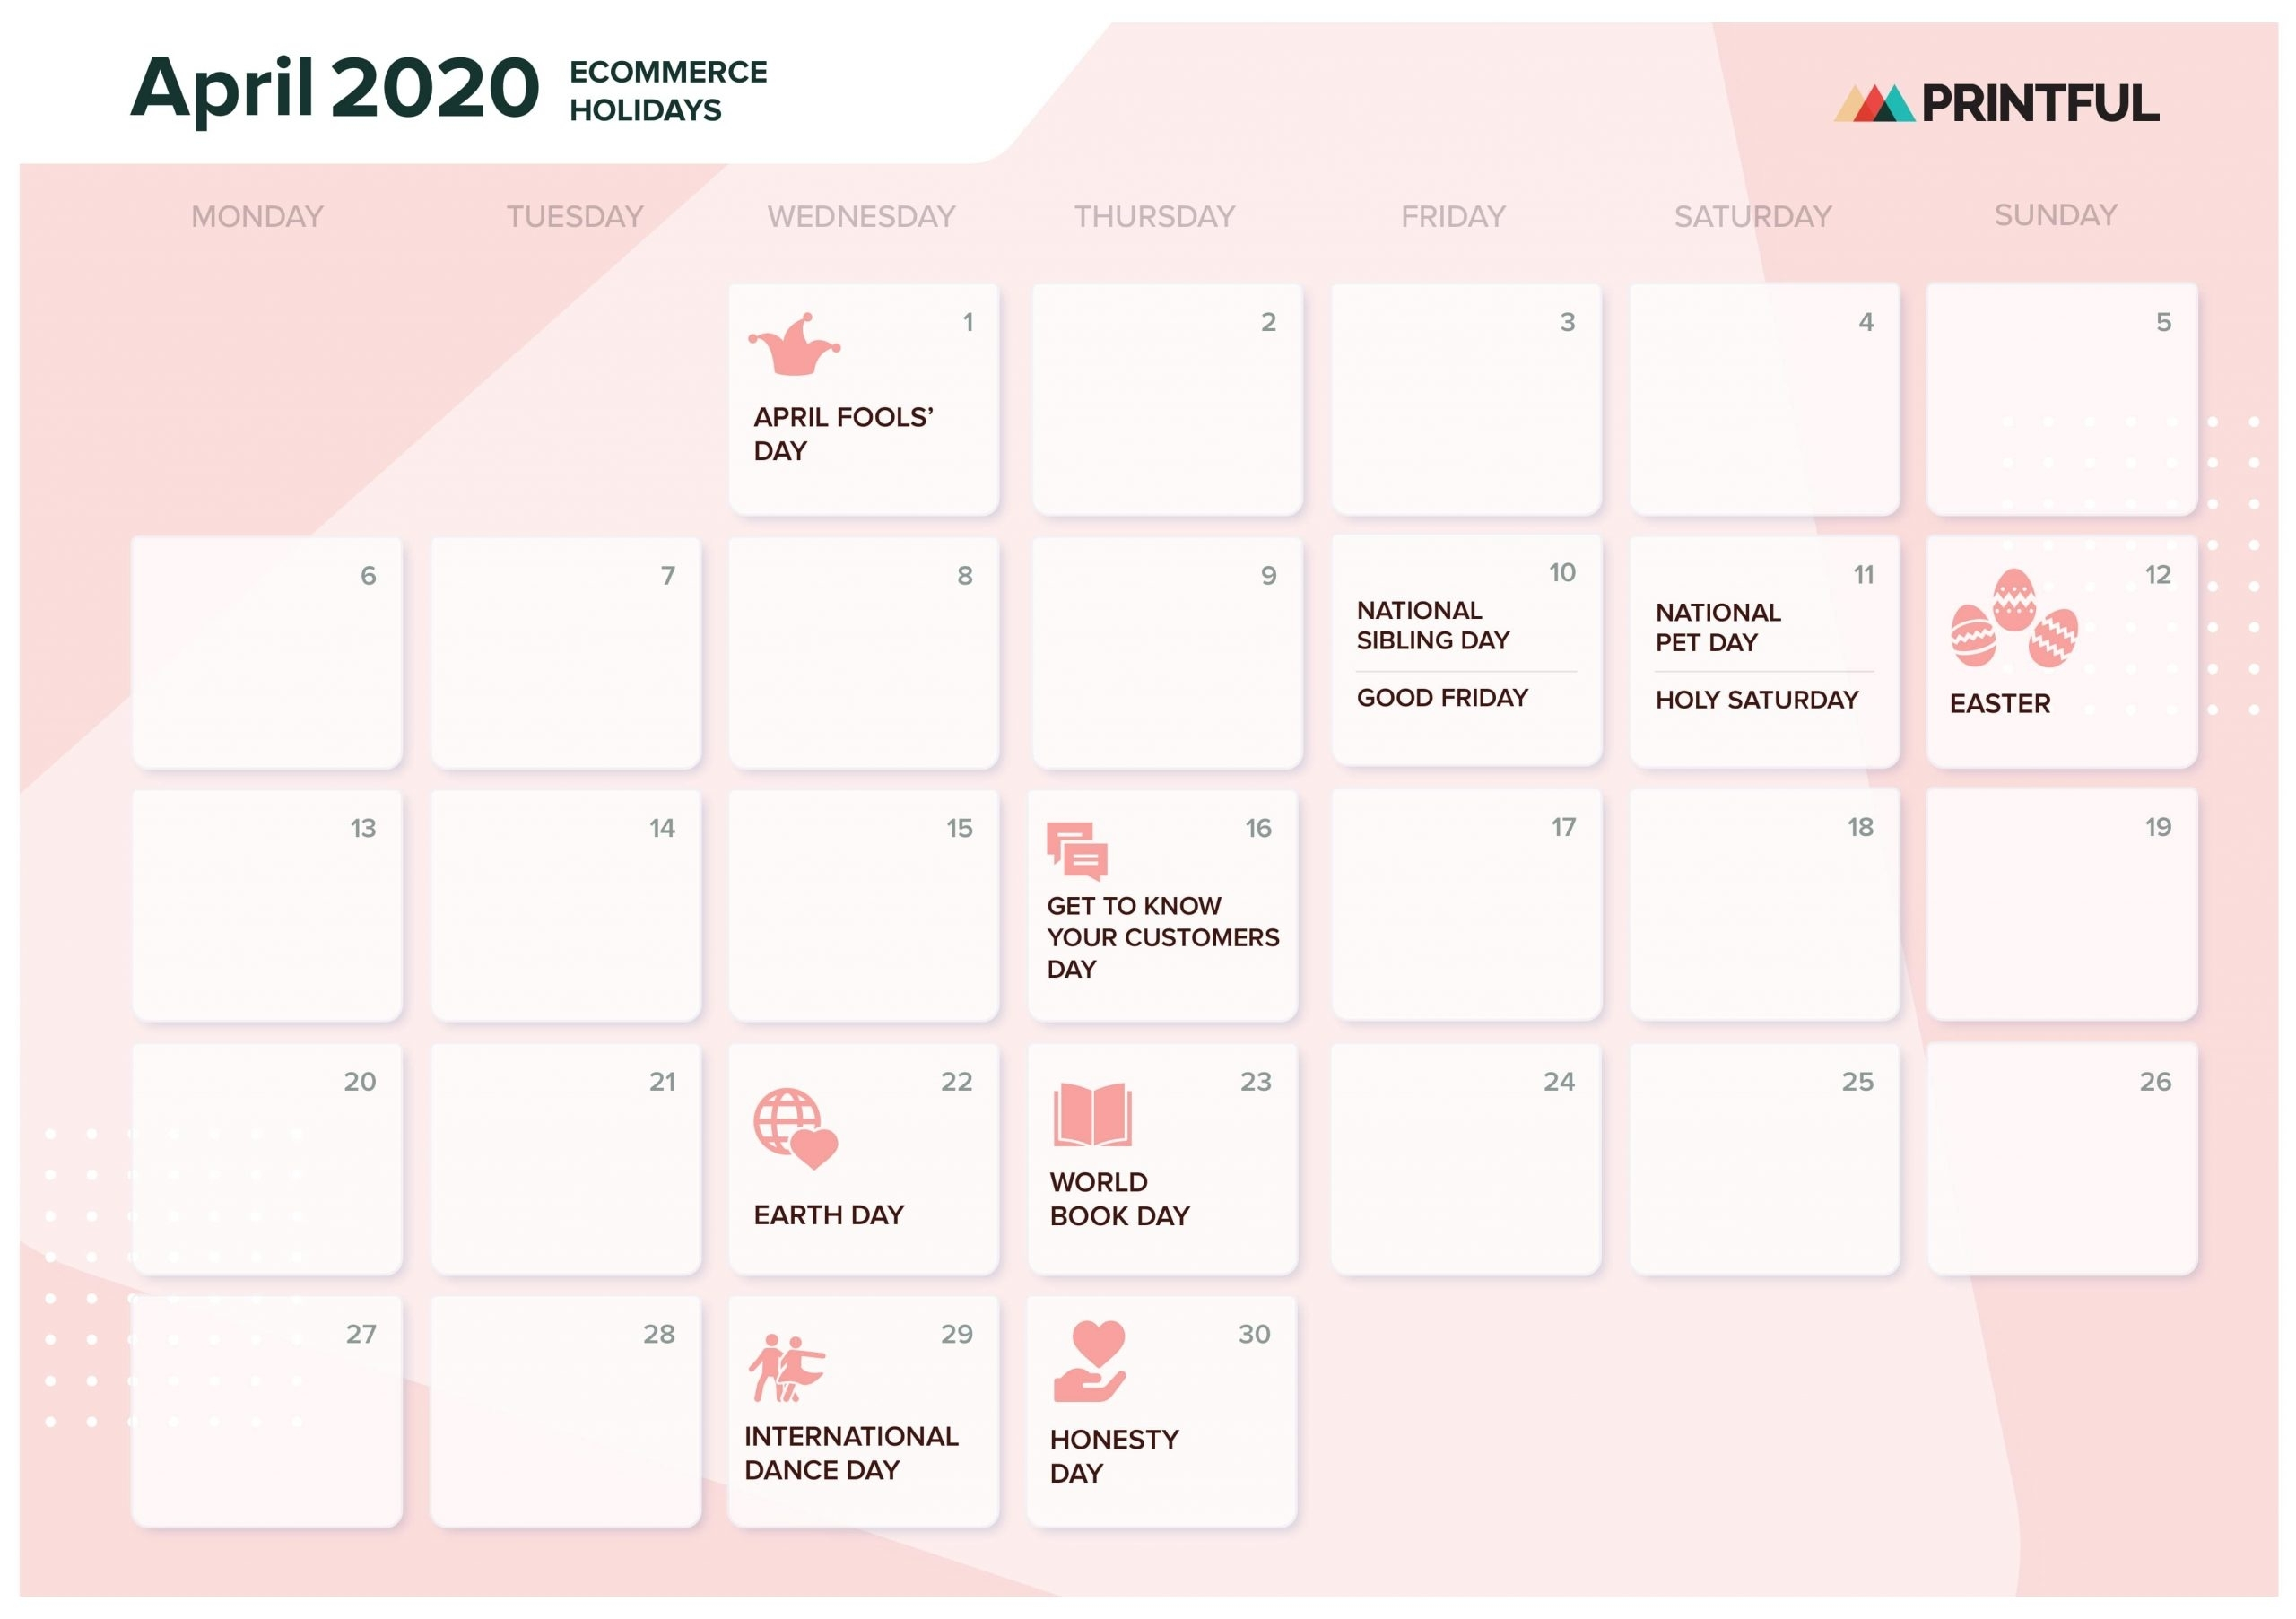 The Ultimate 2020 Ecommerce Holiday Marketing Calendar regarding Special Days In The Business Calendar 2020